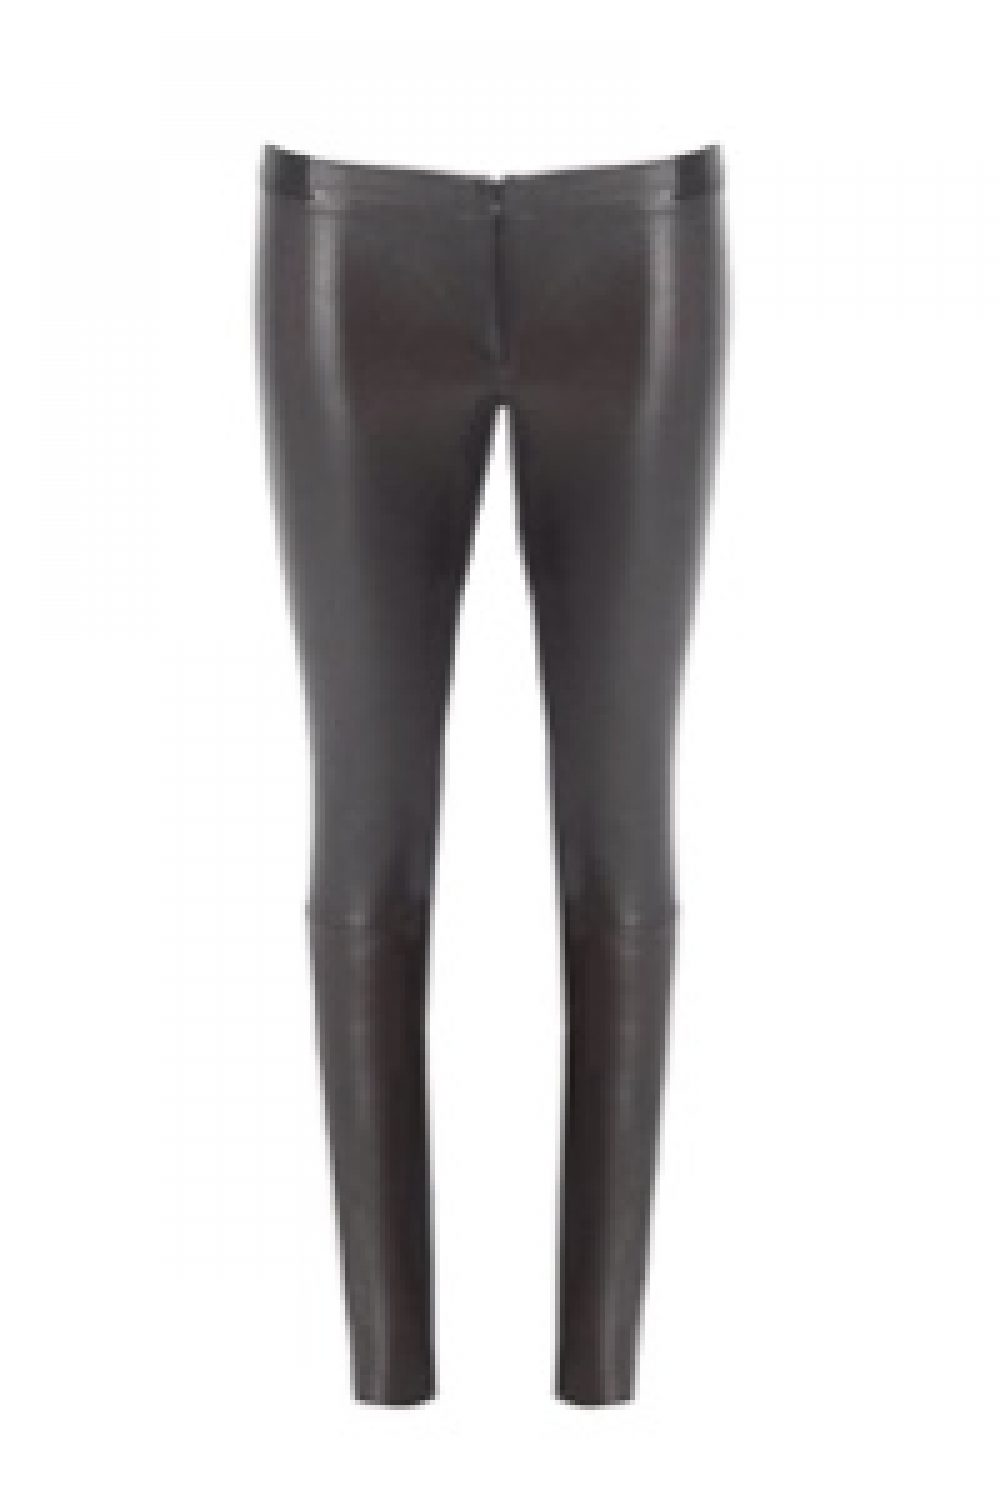 It's Almost Leather Leggings Season (Squeal)